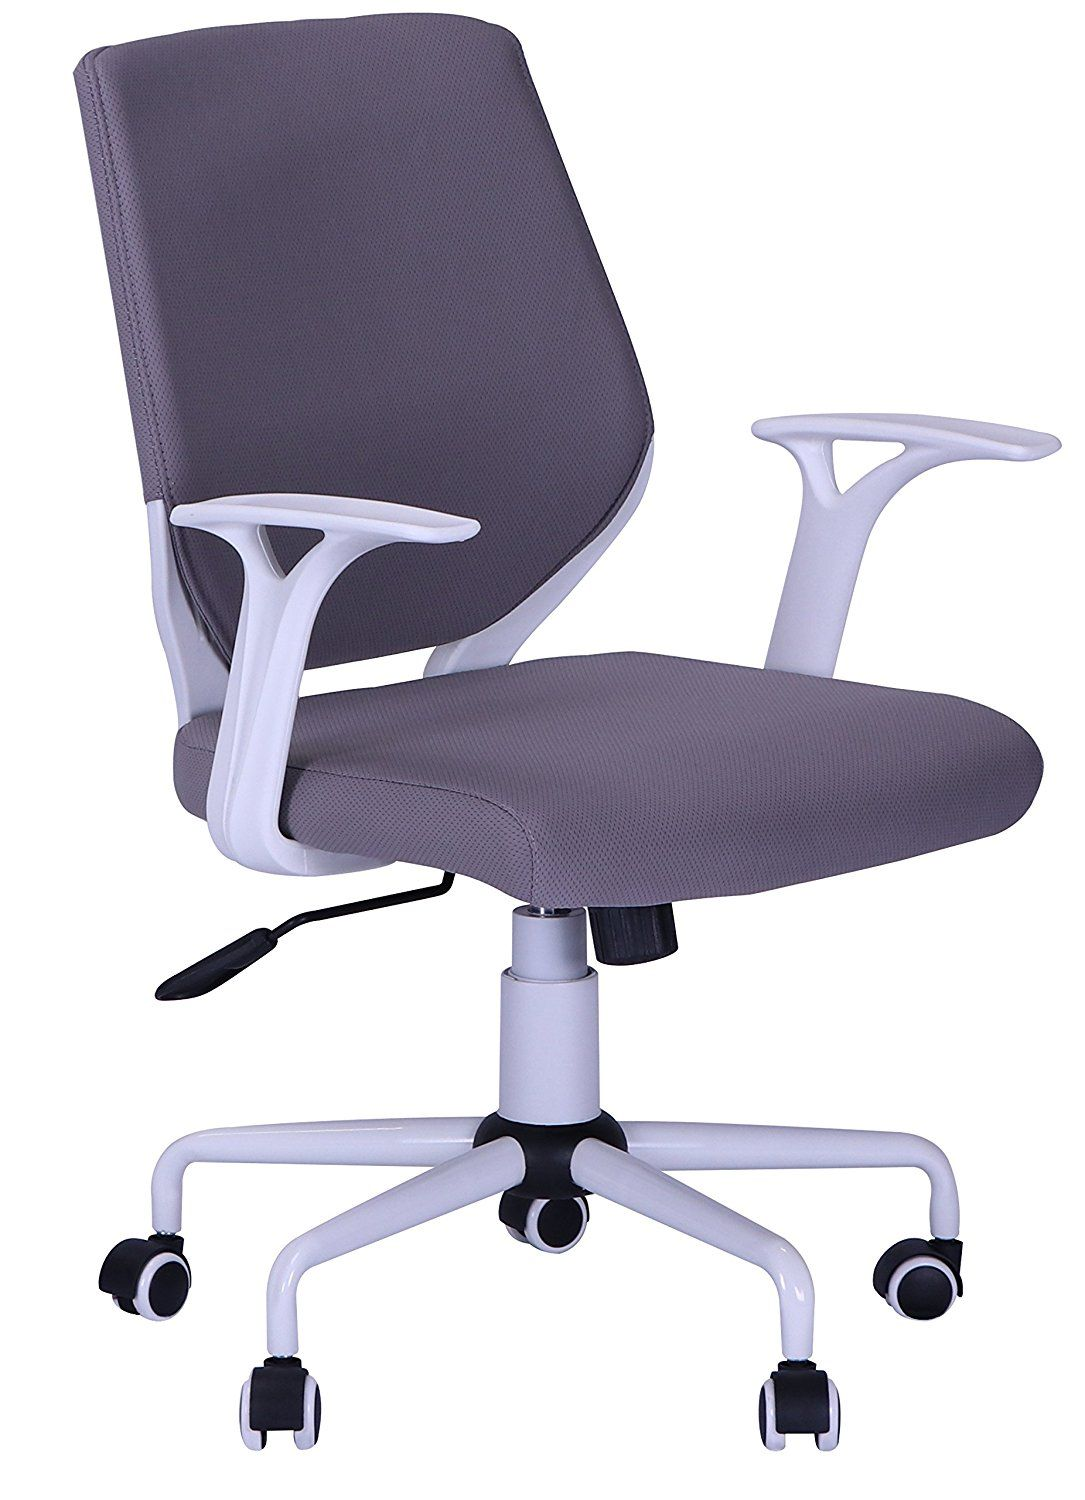 Computer Chair Ergonomically Correct Amazon Office Computer Chair Ergonomic Executive Computer